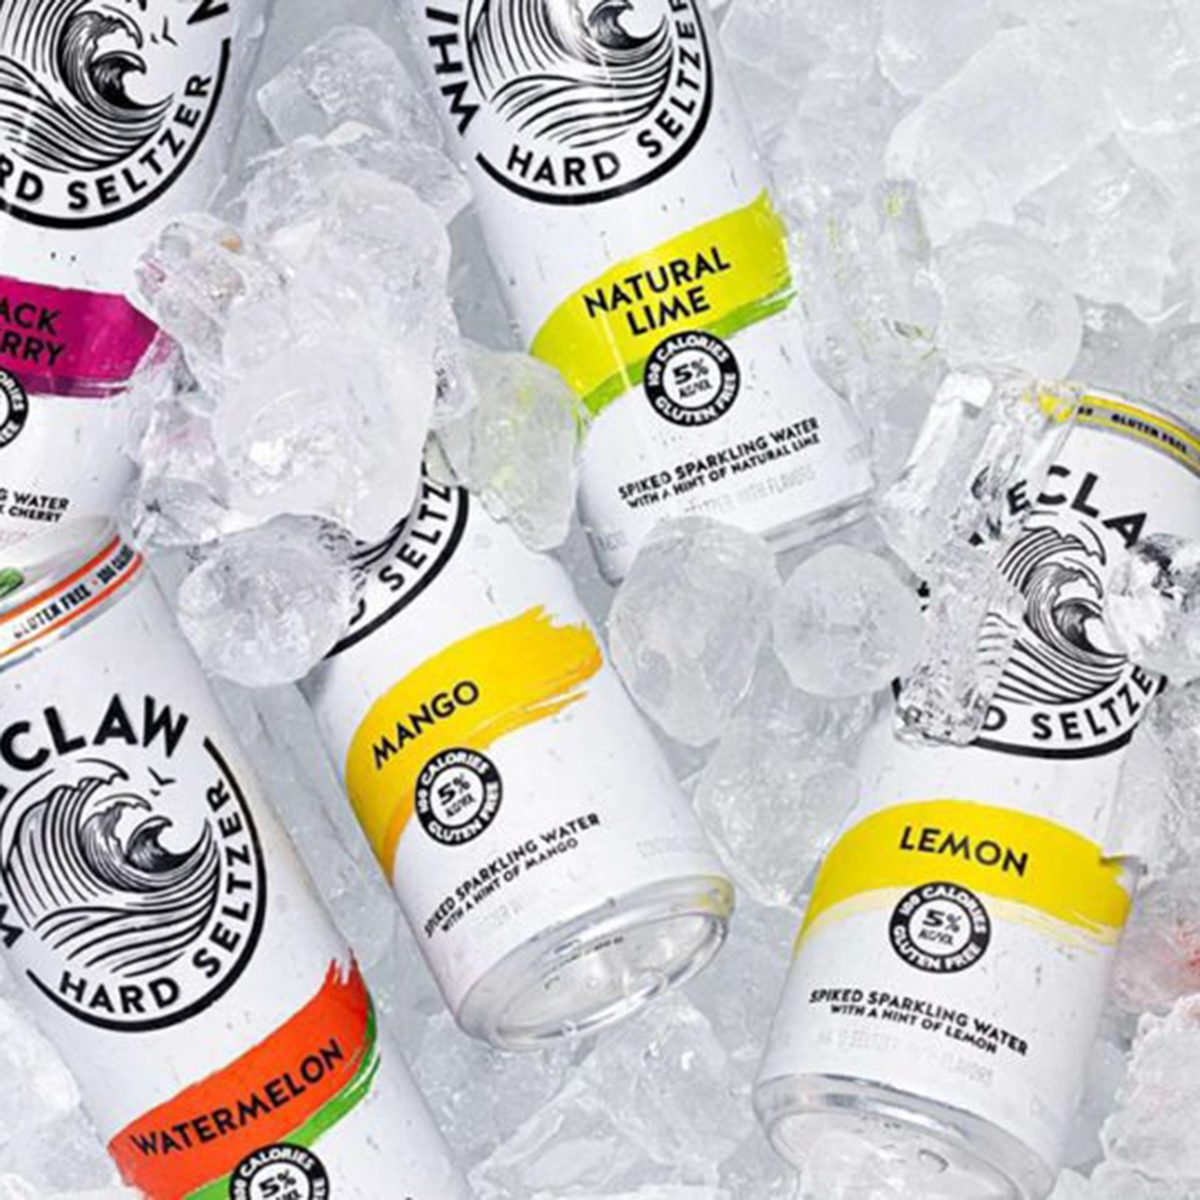 Multiple White Claw cans on ice